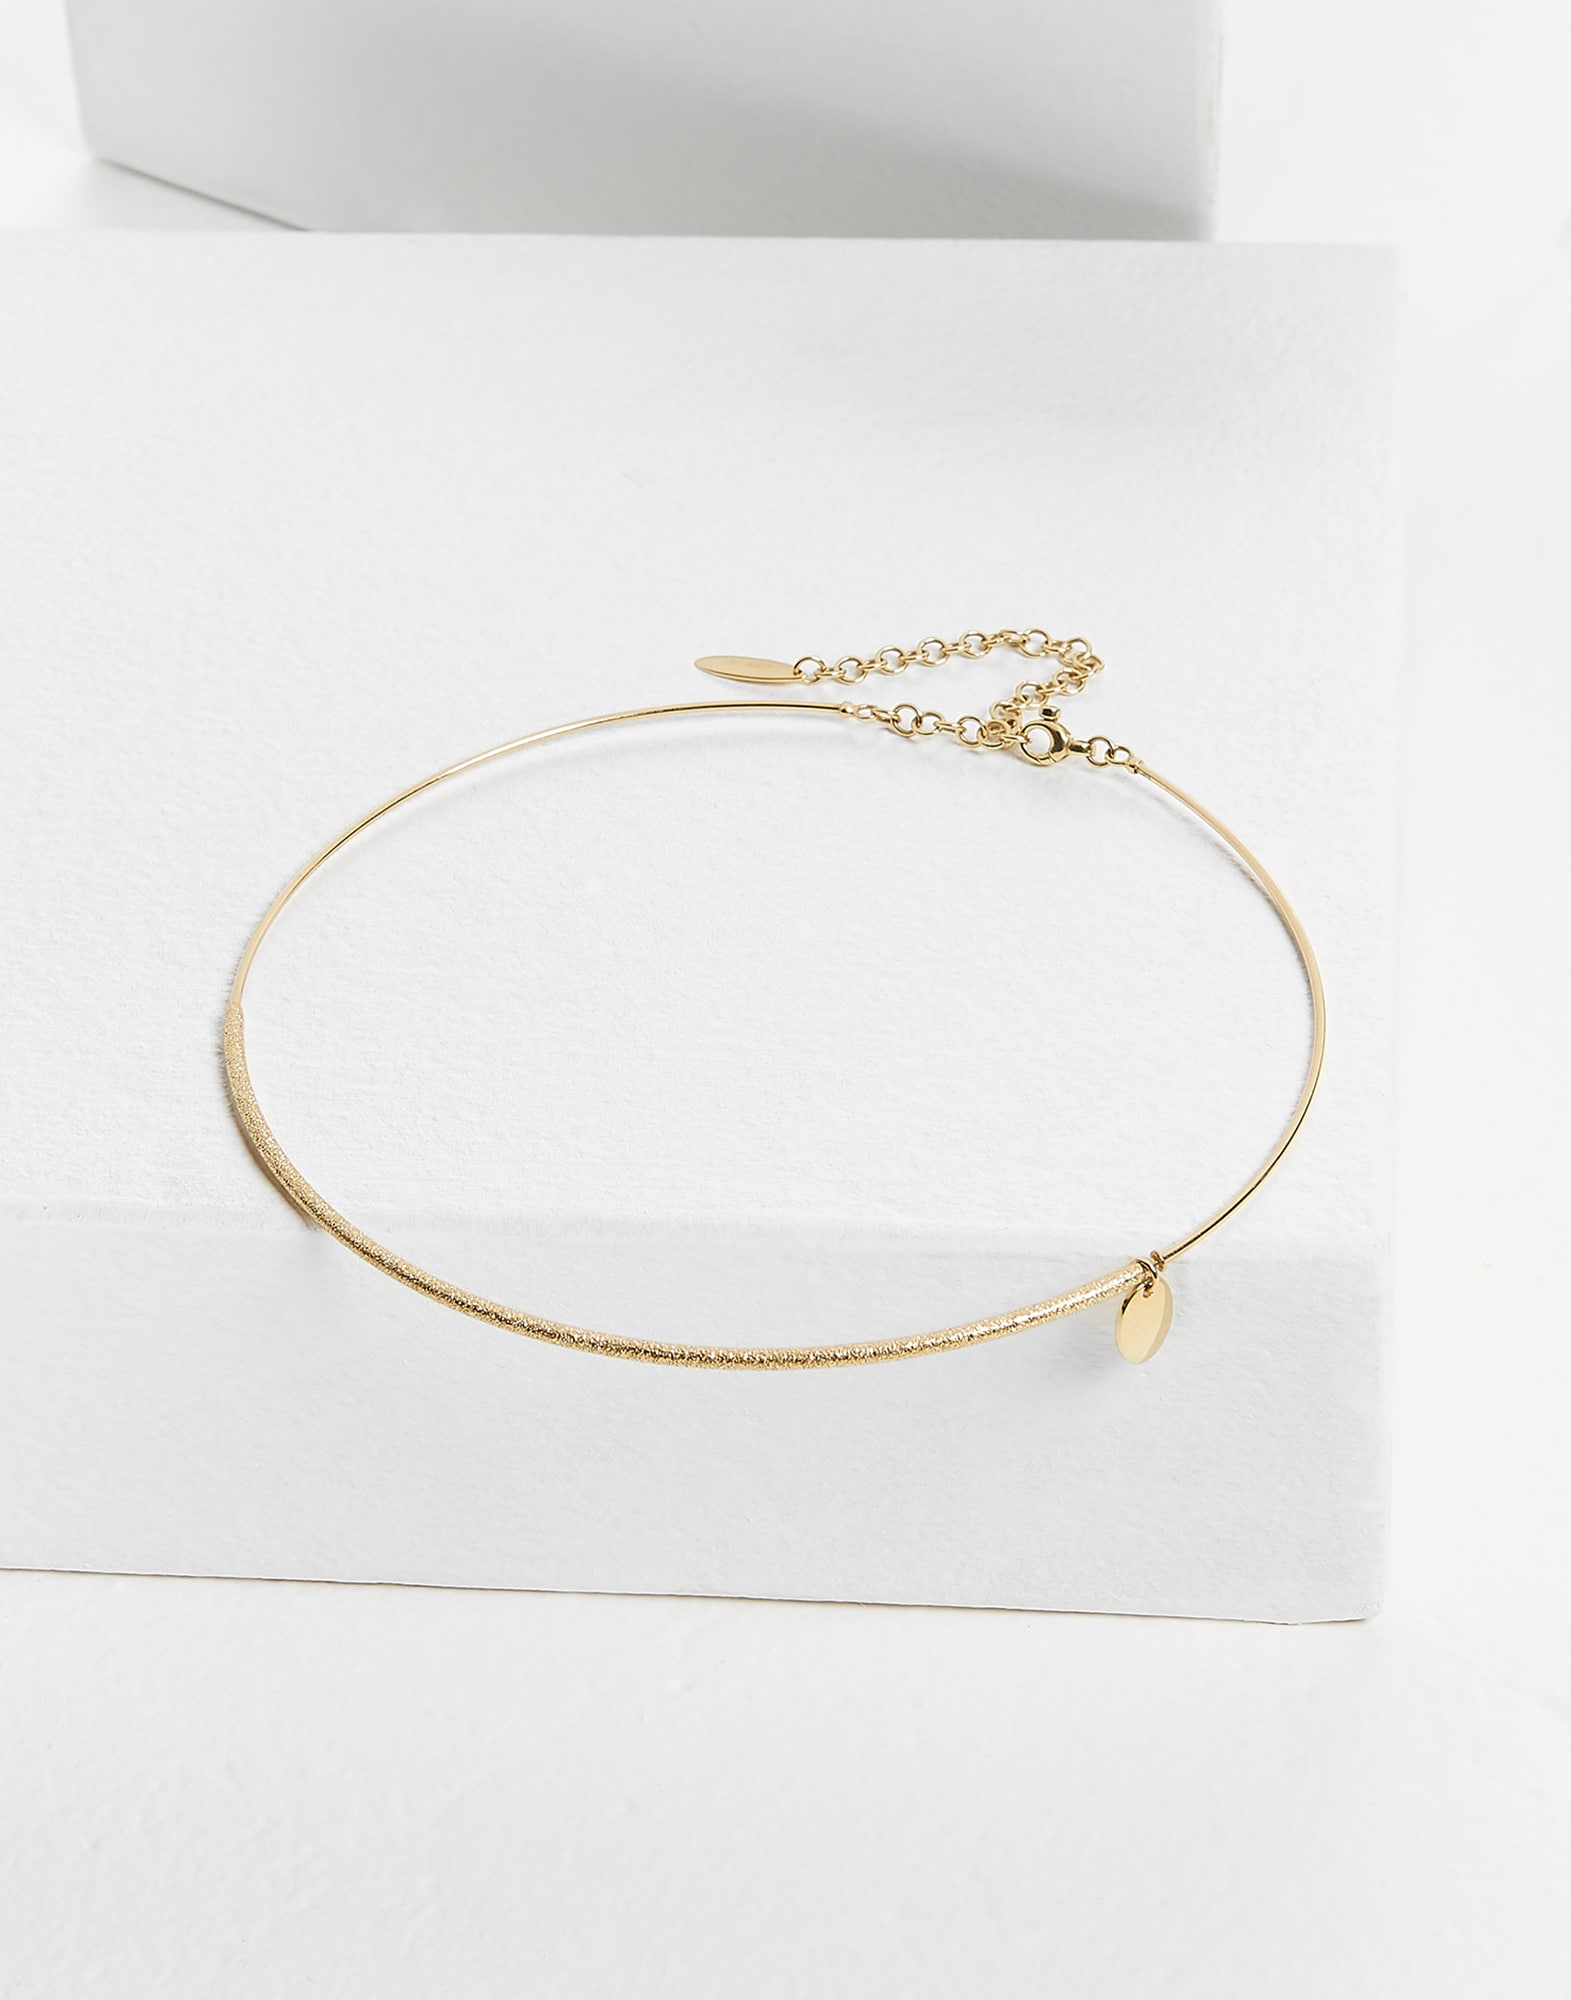 Necklace Gold Woman 0 - Brunello Cucinelli